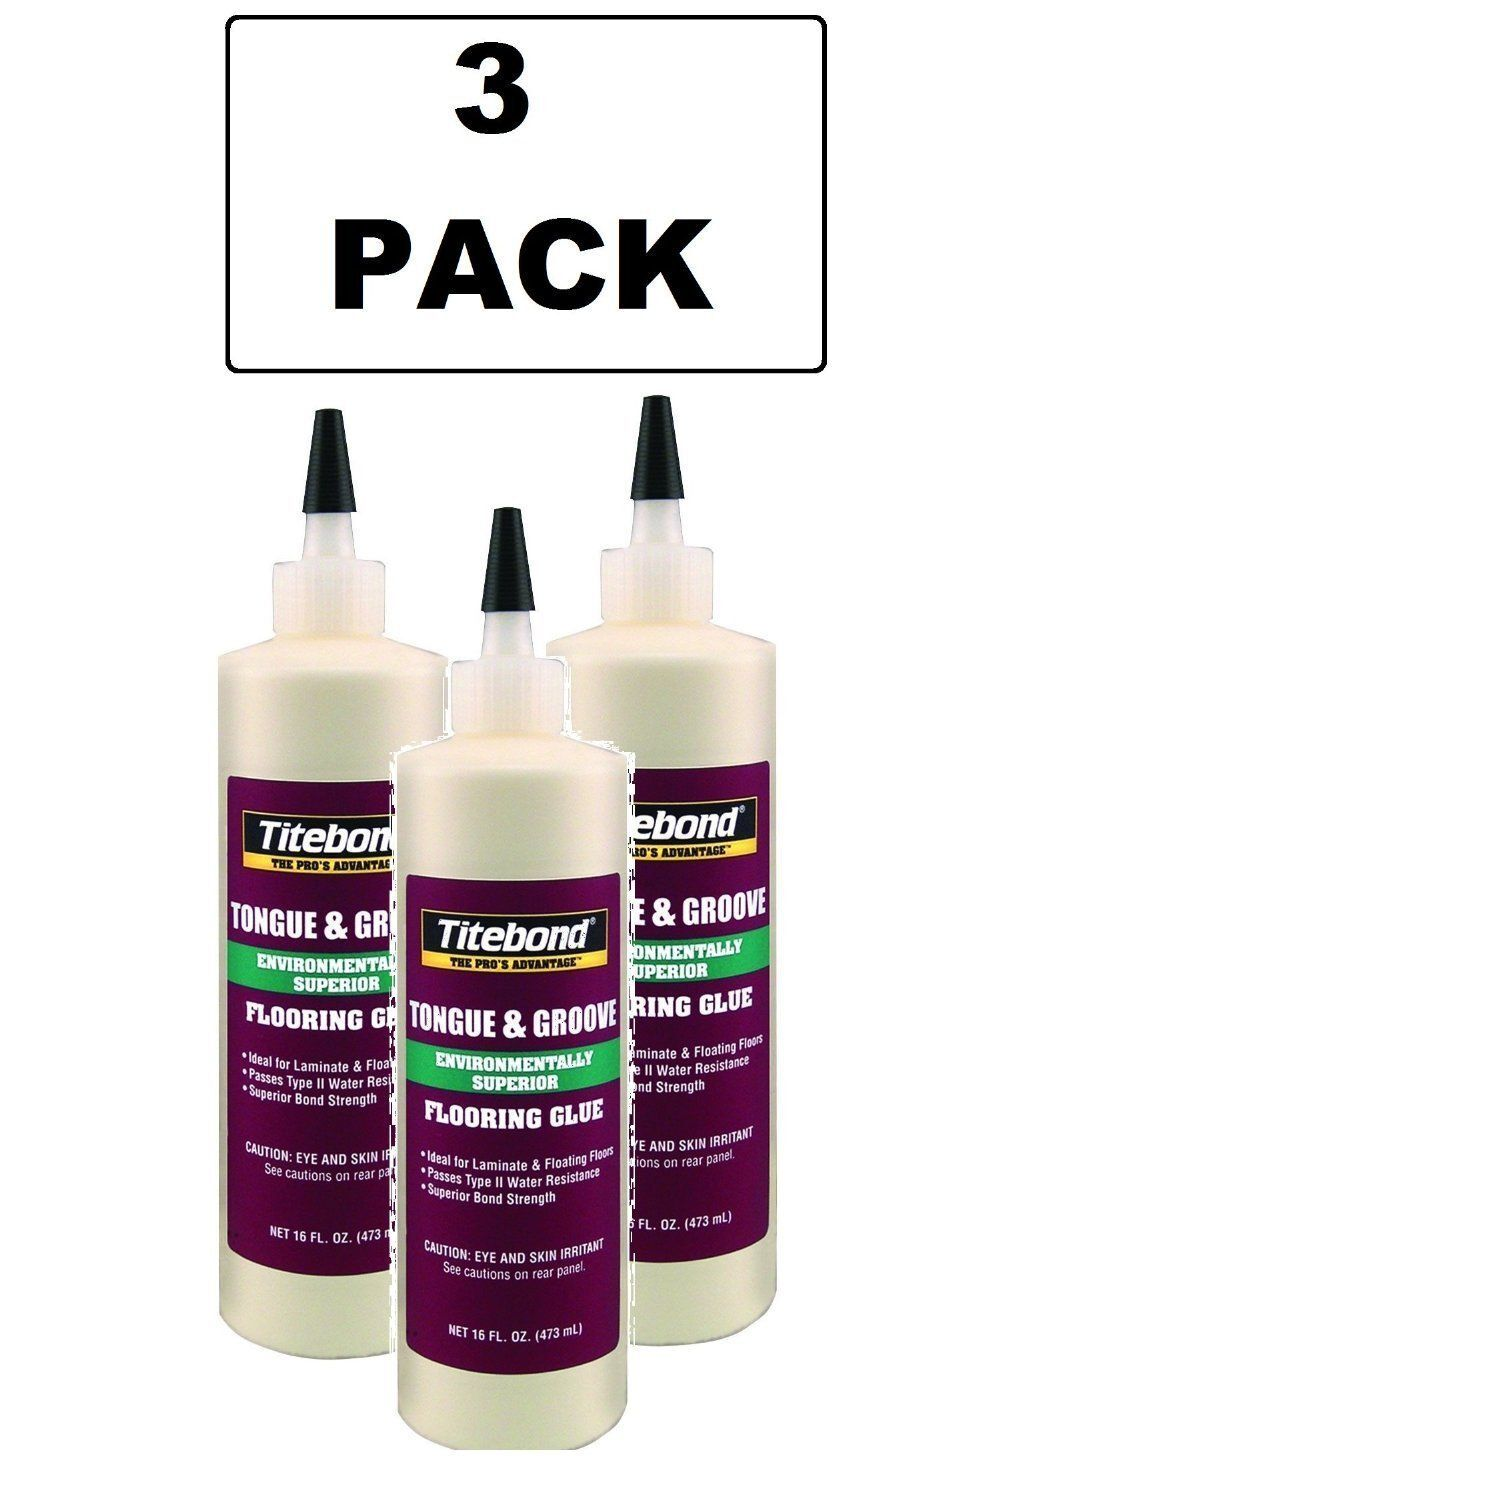 3 pack 2104 tongue and groove glue